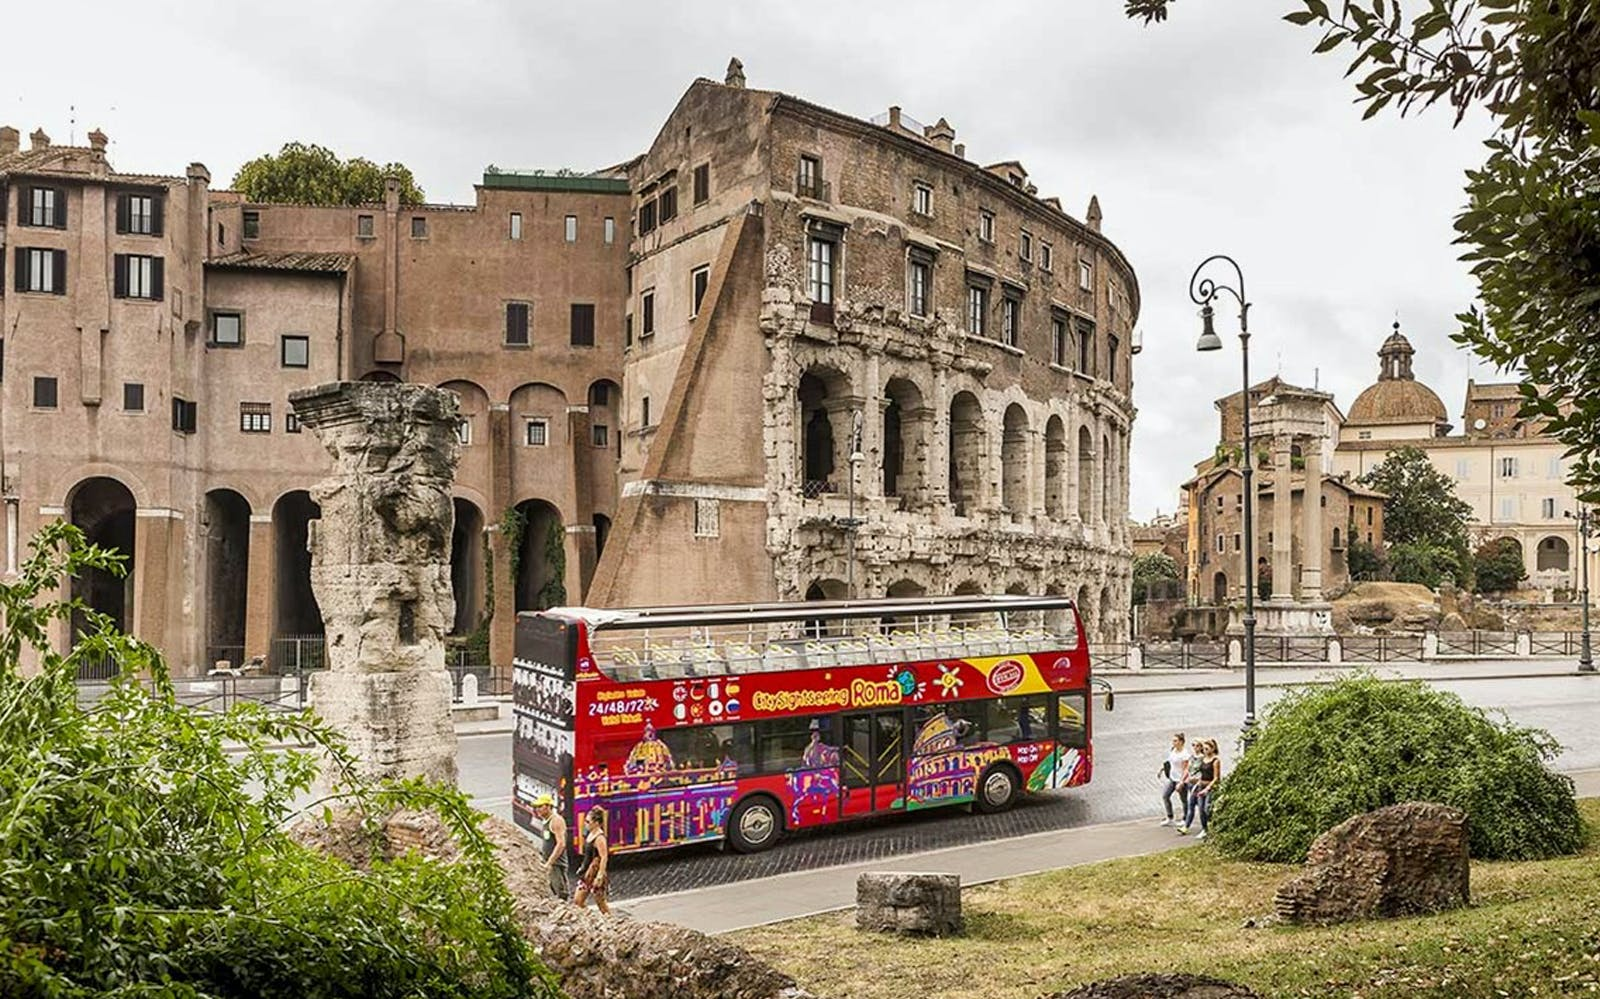 Maxi Combo: Hop-on Hop-off + Skip The Line to Vatican and Colosseum Tickets